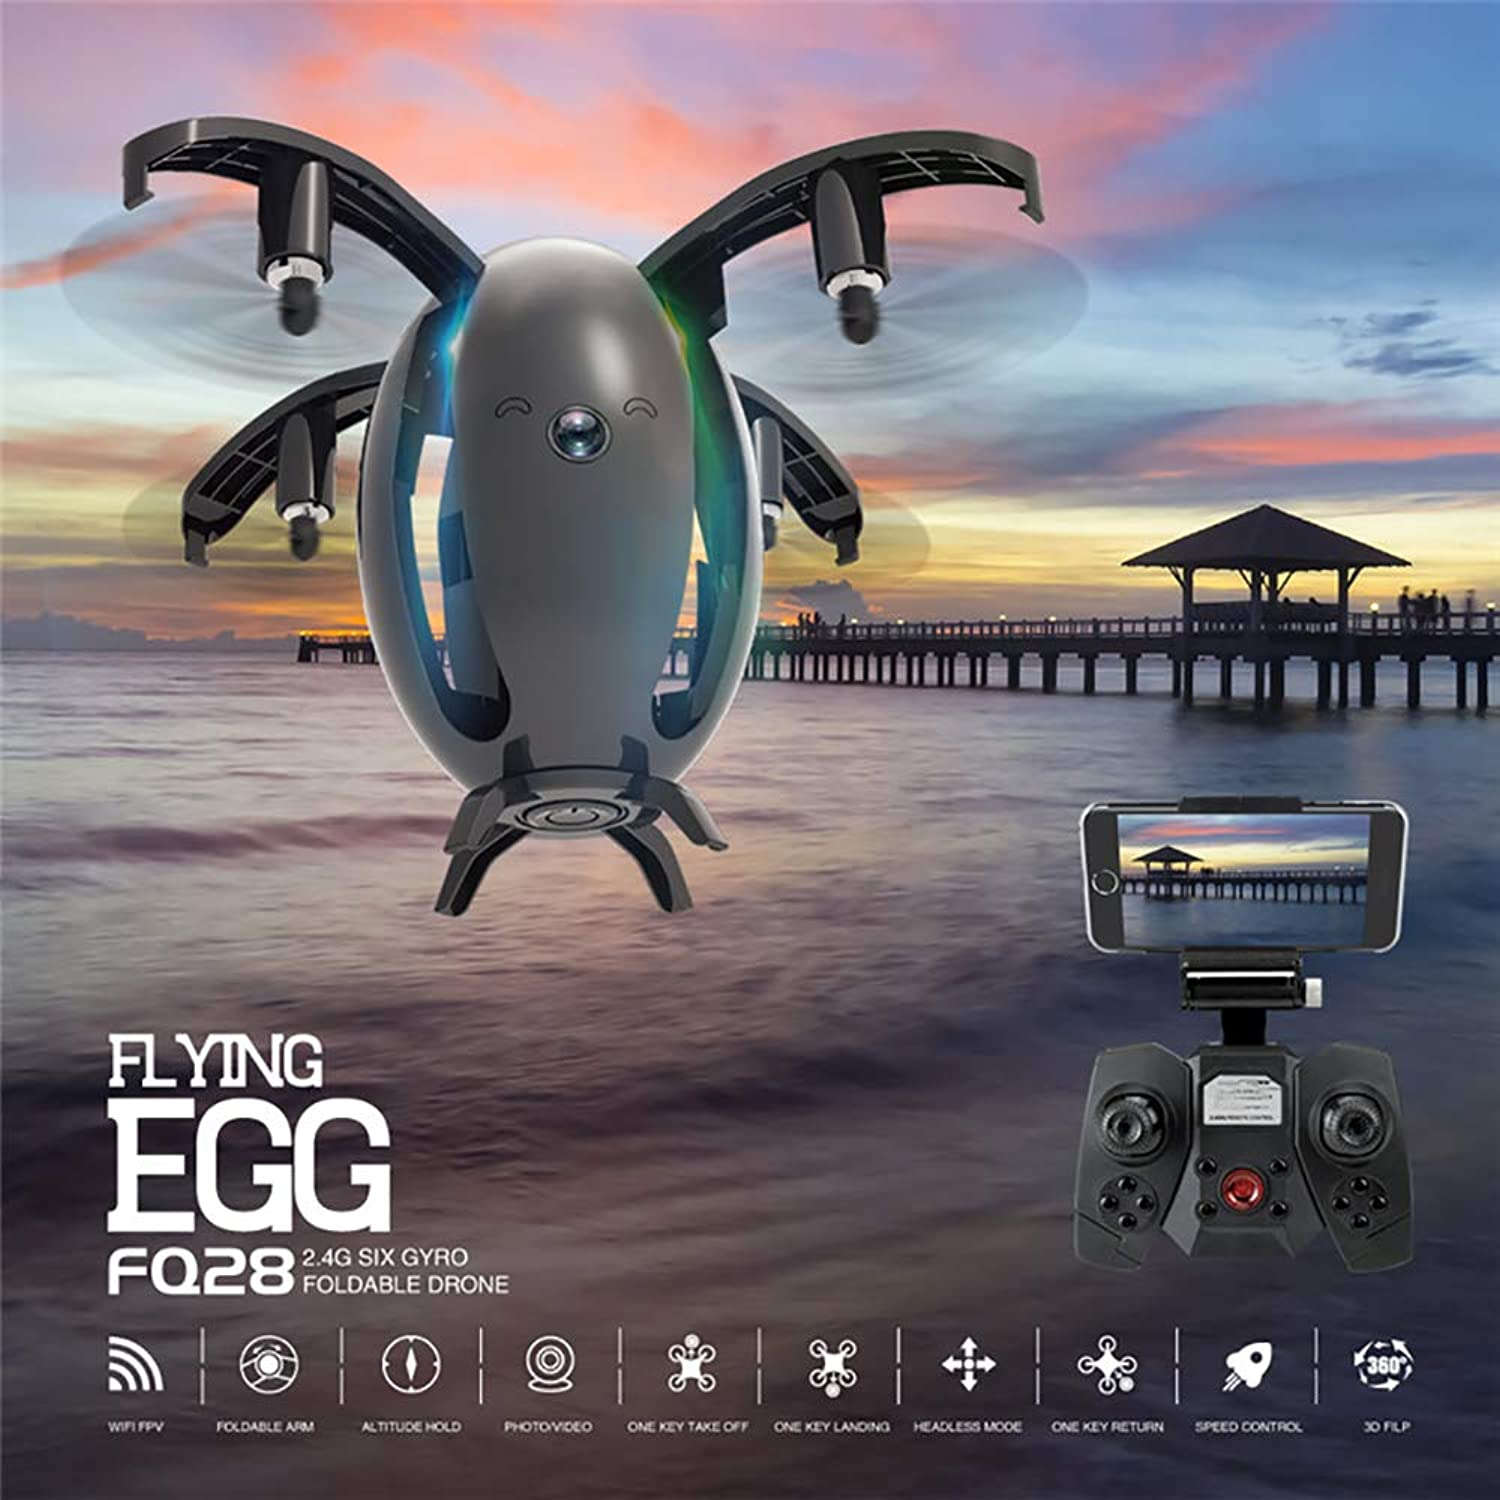 RC helicopter 3.5CH 6axis gyro RTF infrared remote control drone toy ready to use LED lights to fly